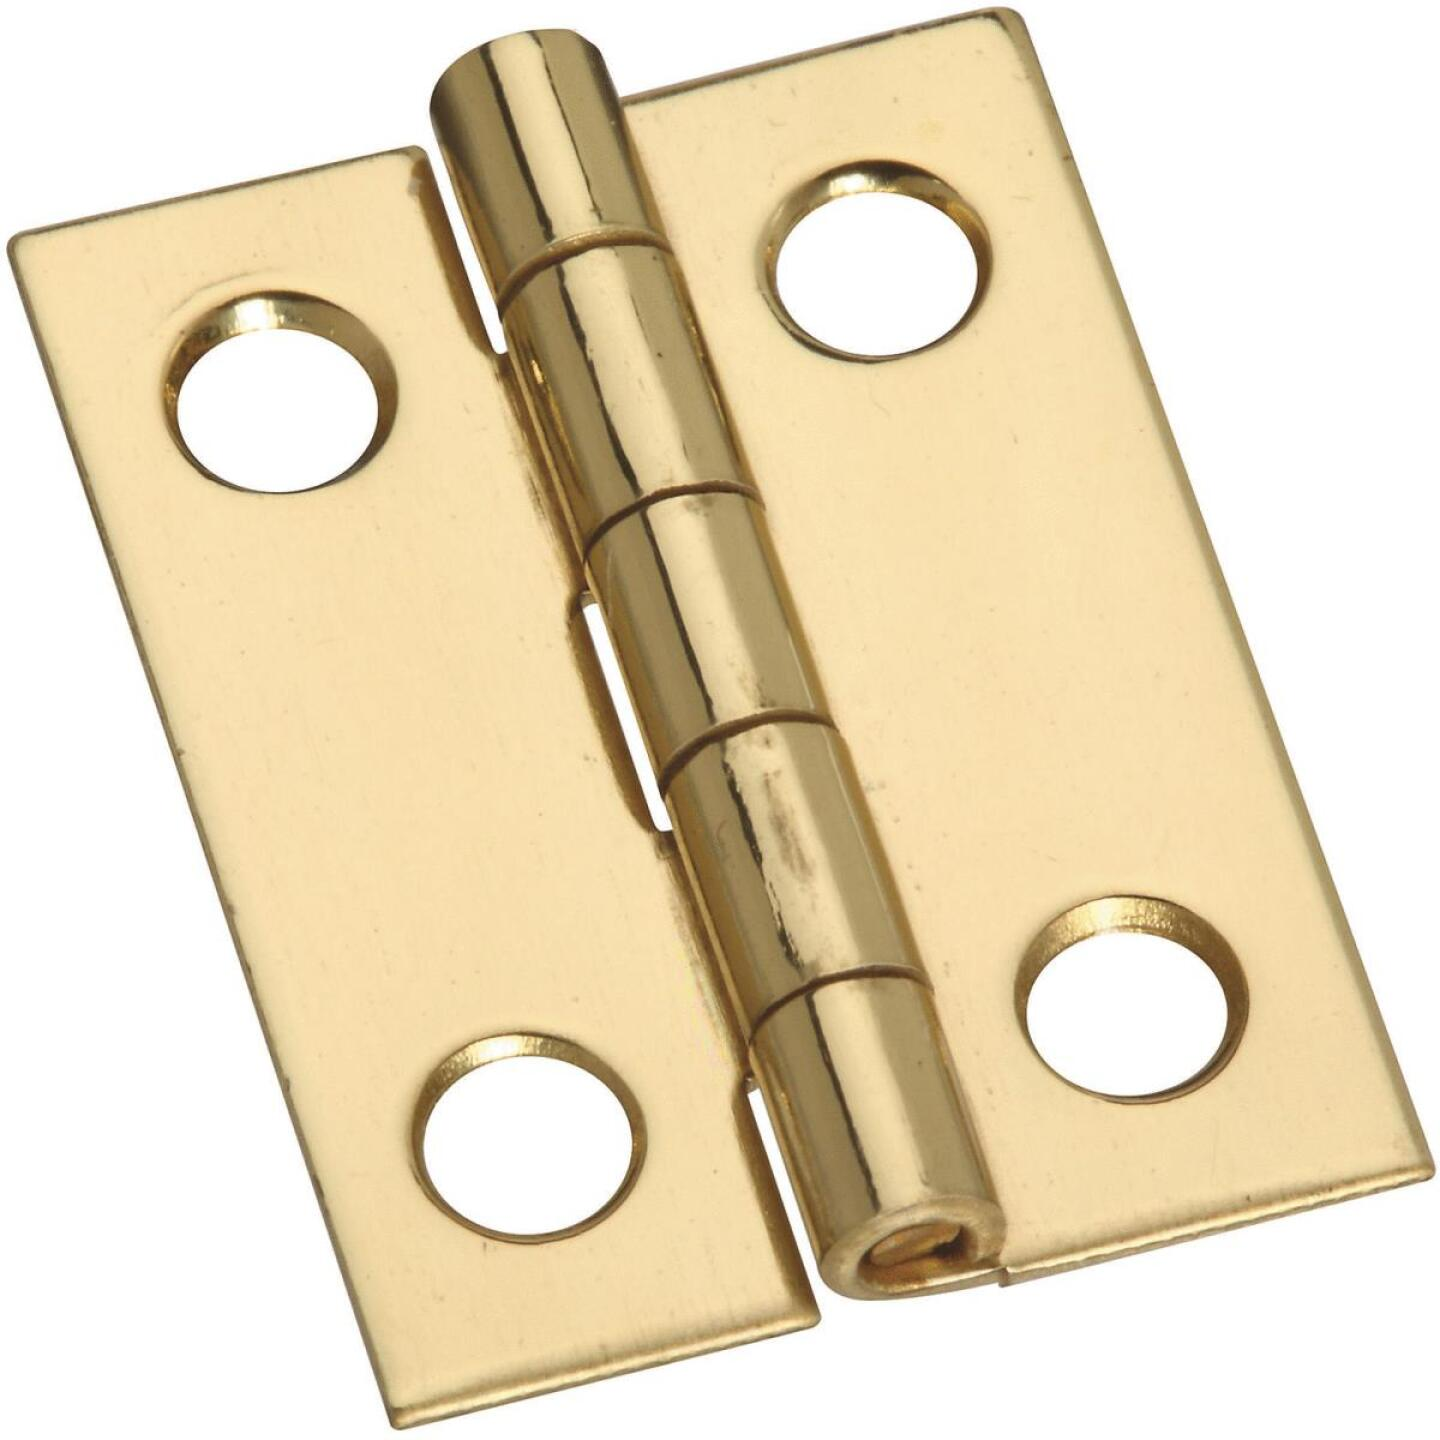 National 3/4 In. x 1 In. Narrow Brass Decorative Hinge (4-Pack) Image 1